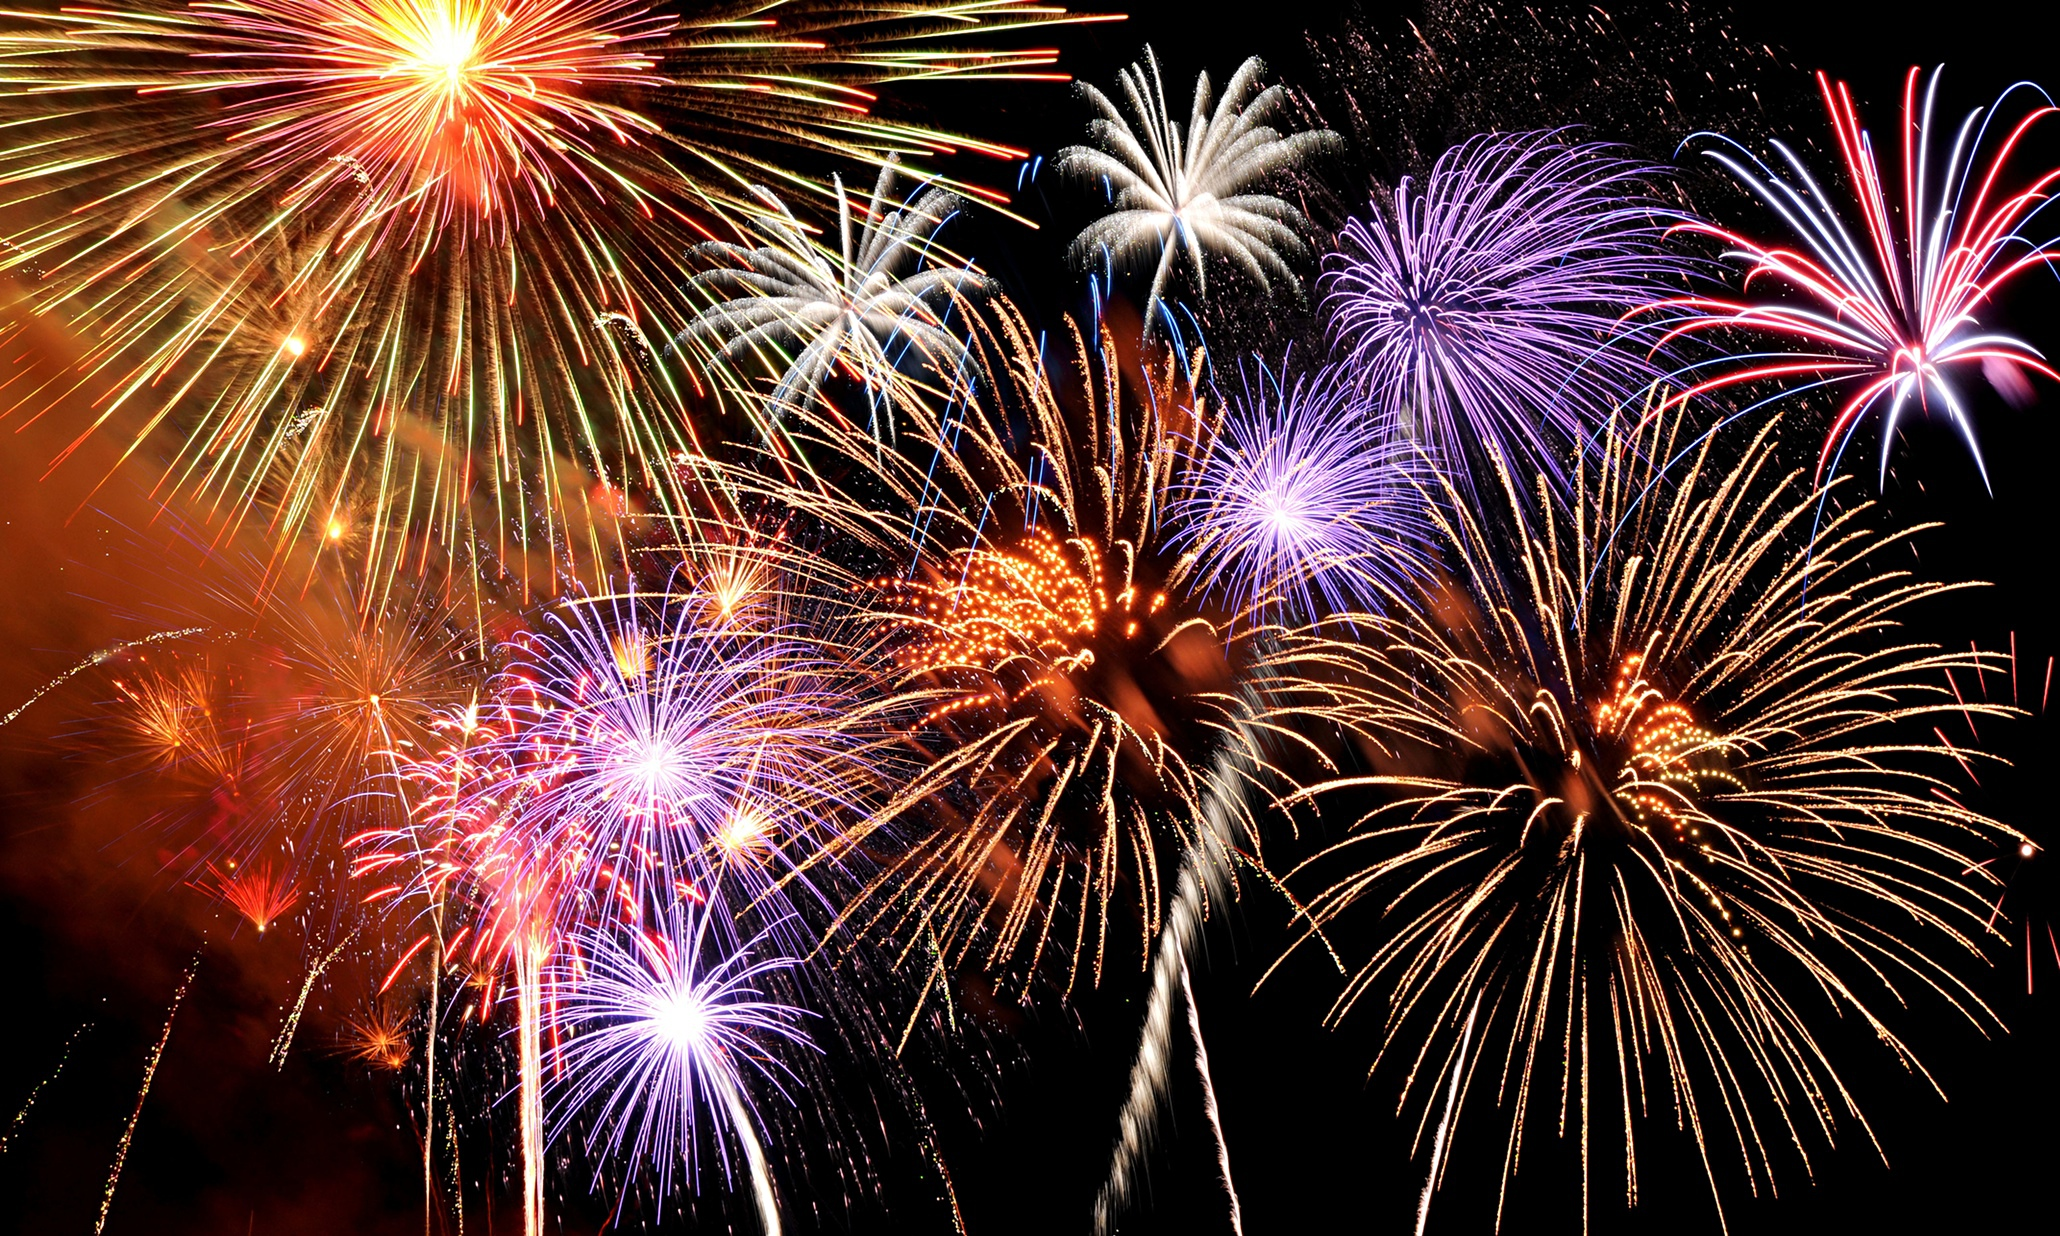 Join us for another year of fantastic fireworks at The Pug & Greyhound! Tickets: £5 adults, £15 family (2 adults & 2 kids) Bonfire lit at 7pm, Fireworks start at 8pm. Outdoor bar, bbq & live music.